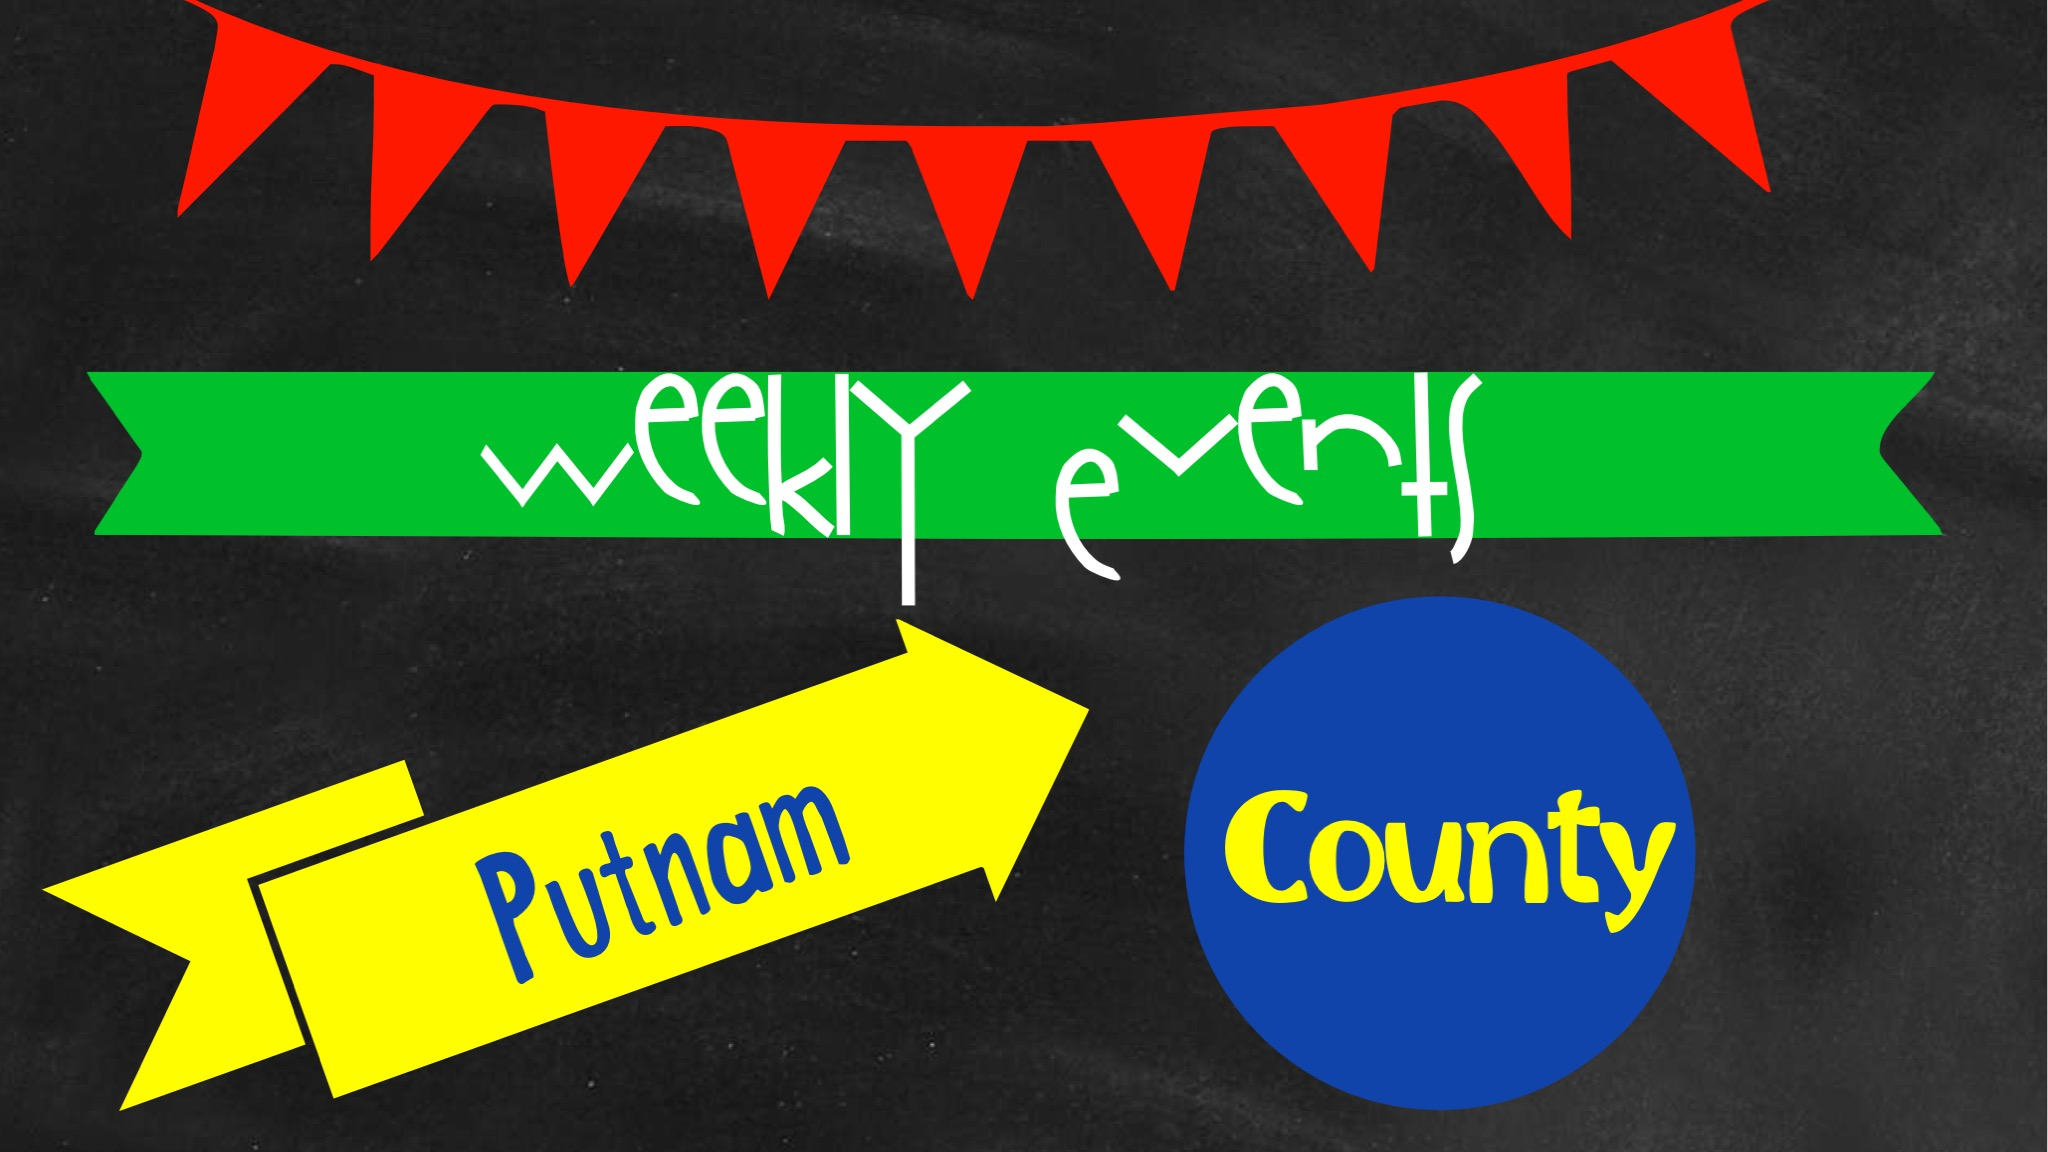 Putnam County Weekly Events 12/17 – 12/22